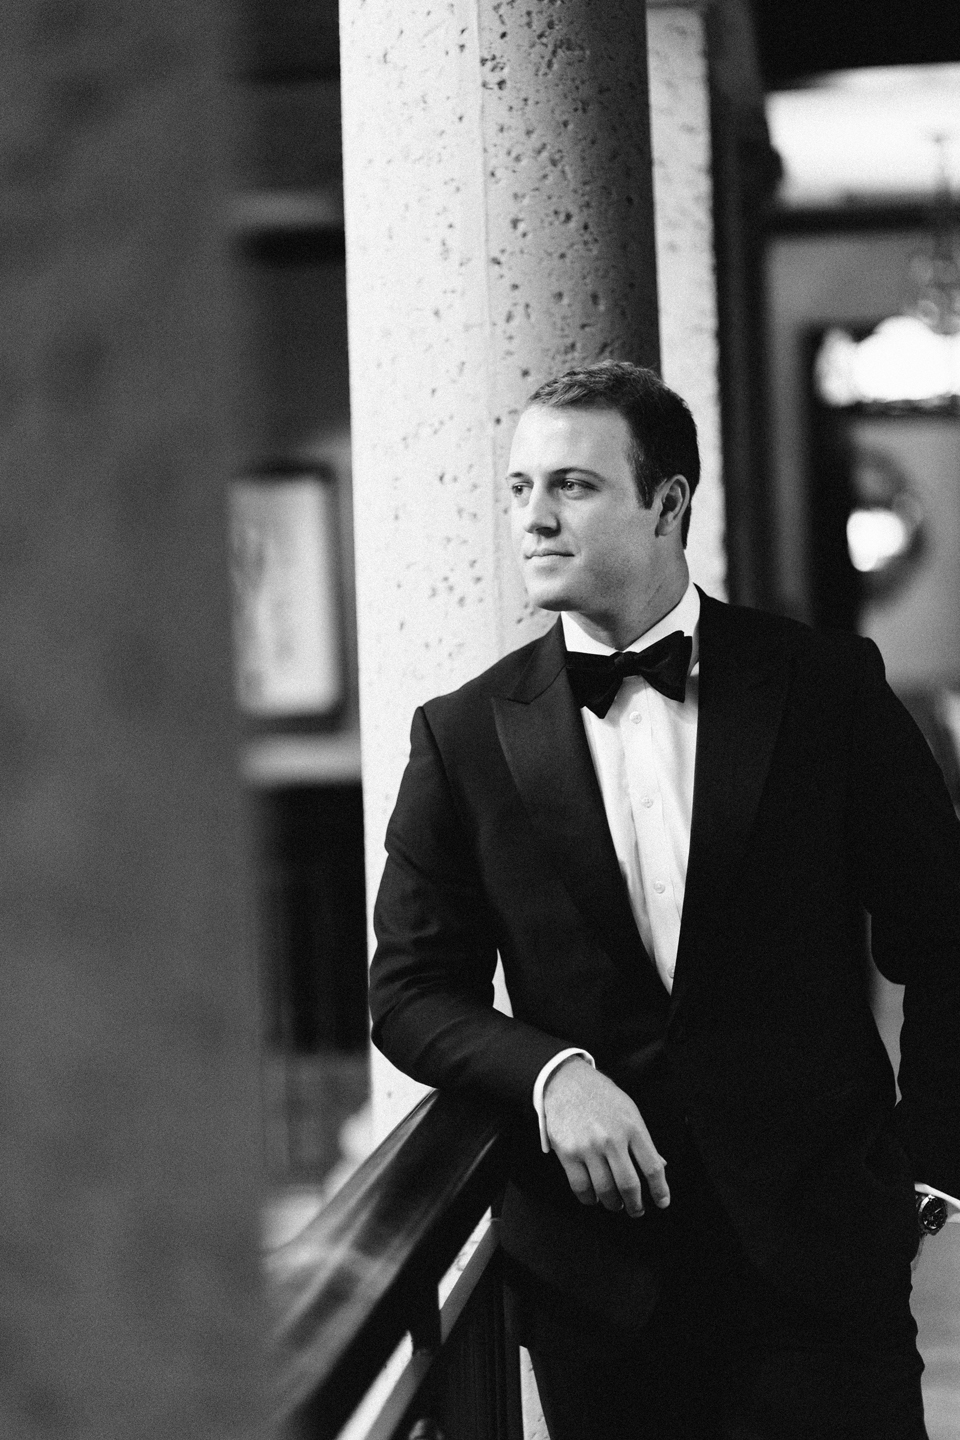 Image of a black and white portrait of a groom on his wedding day.  The groom is wearing a black tuxedo and leaning on the railing at the TPC Sawgrass in Ponte Vedra, Florida